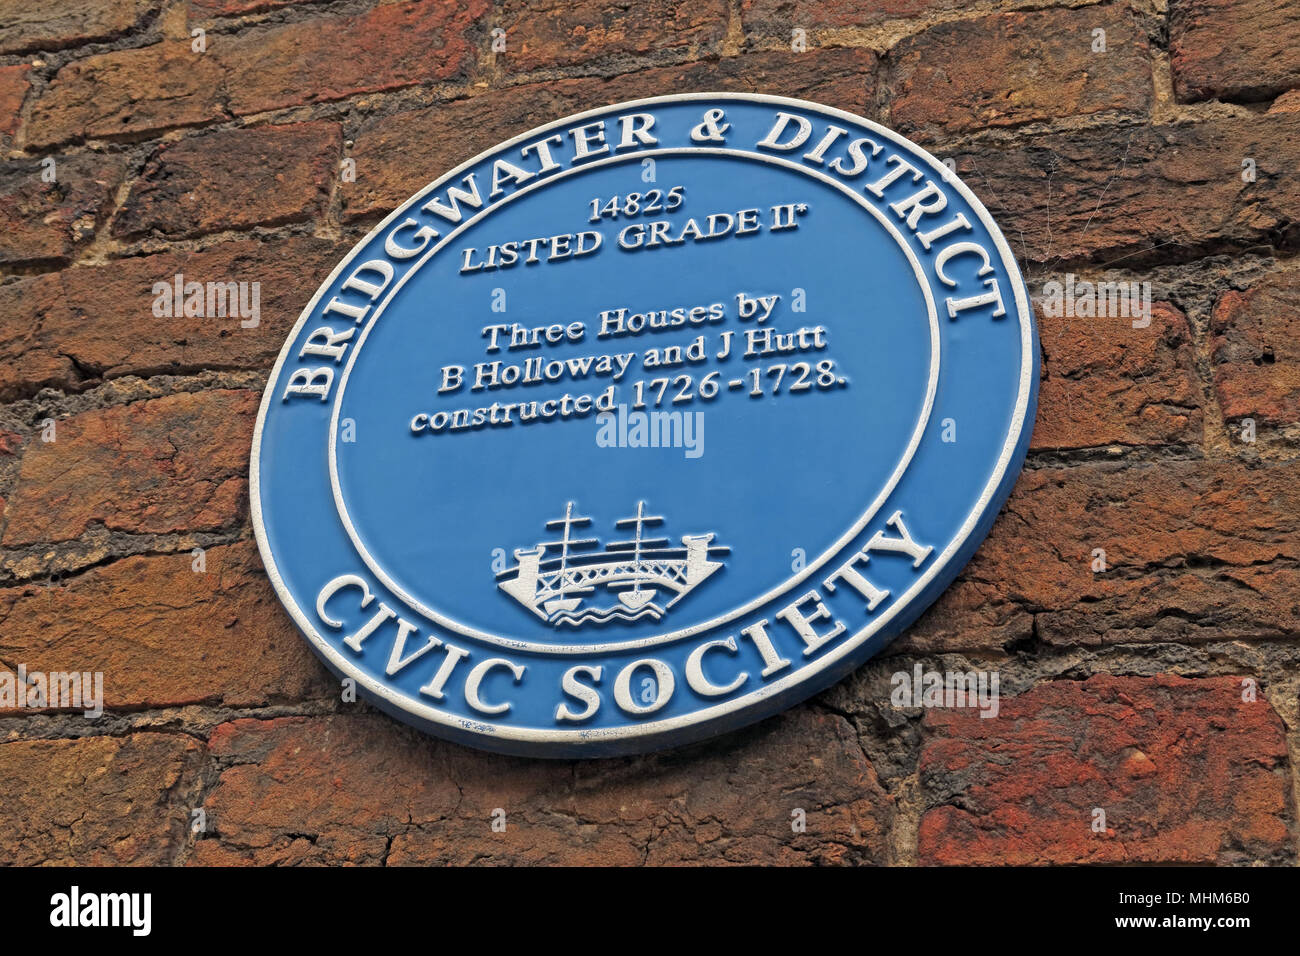 SDC,and,District,Civic,Society,blue,plaque,By,Holloway